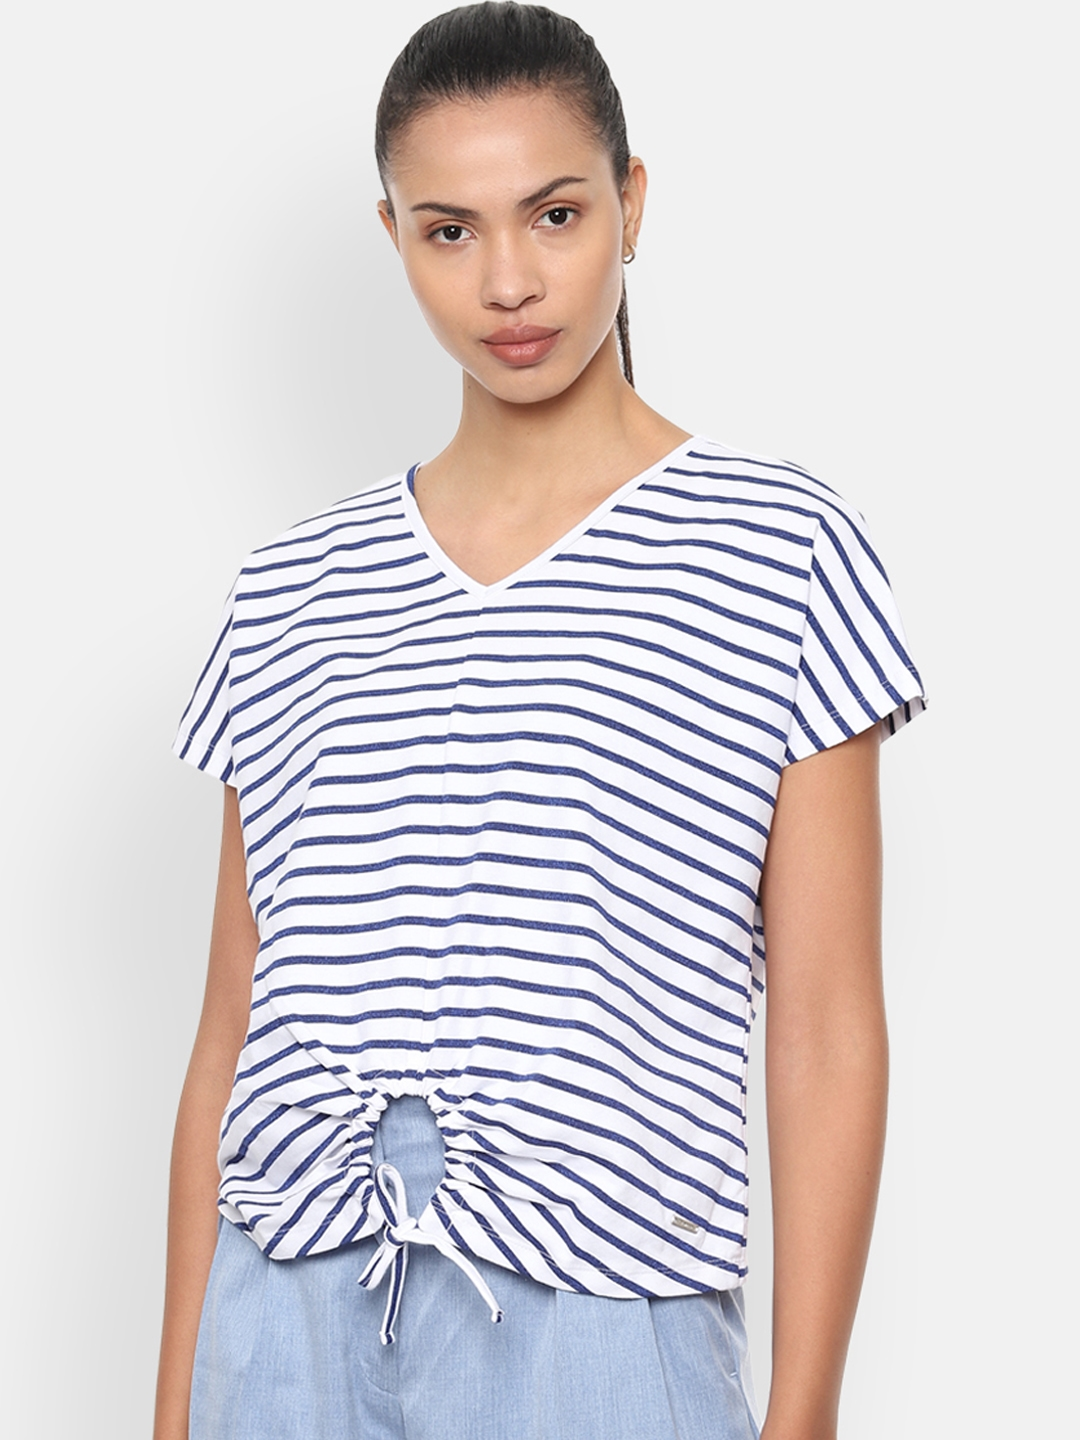 Van Heusen Woman White   Blue Striped Top